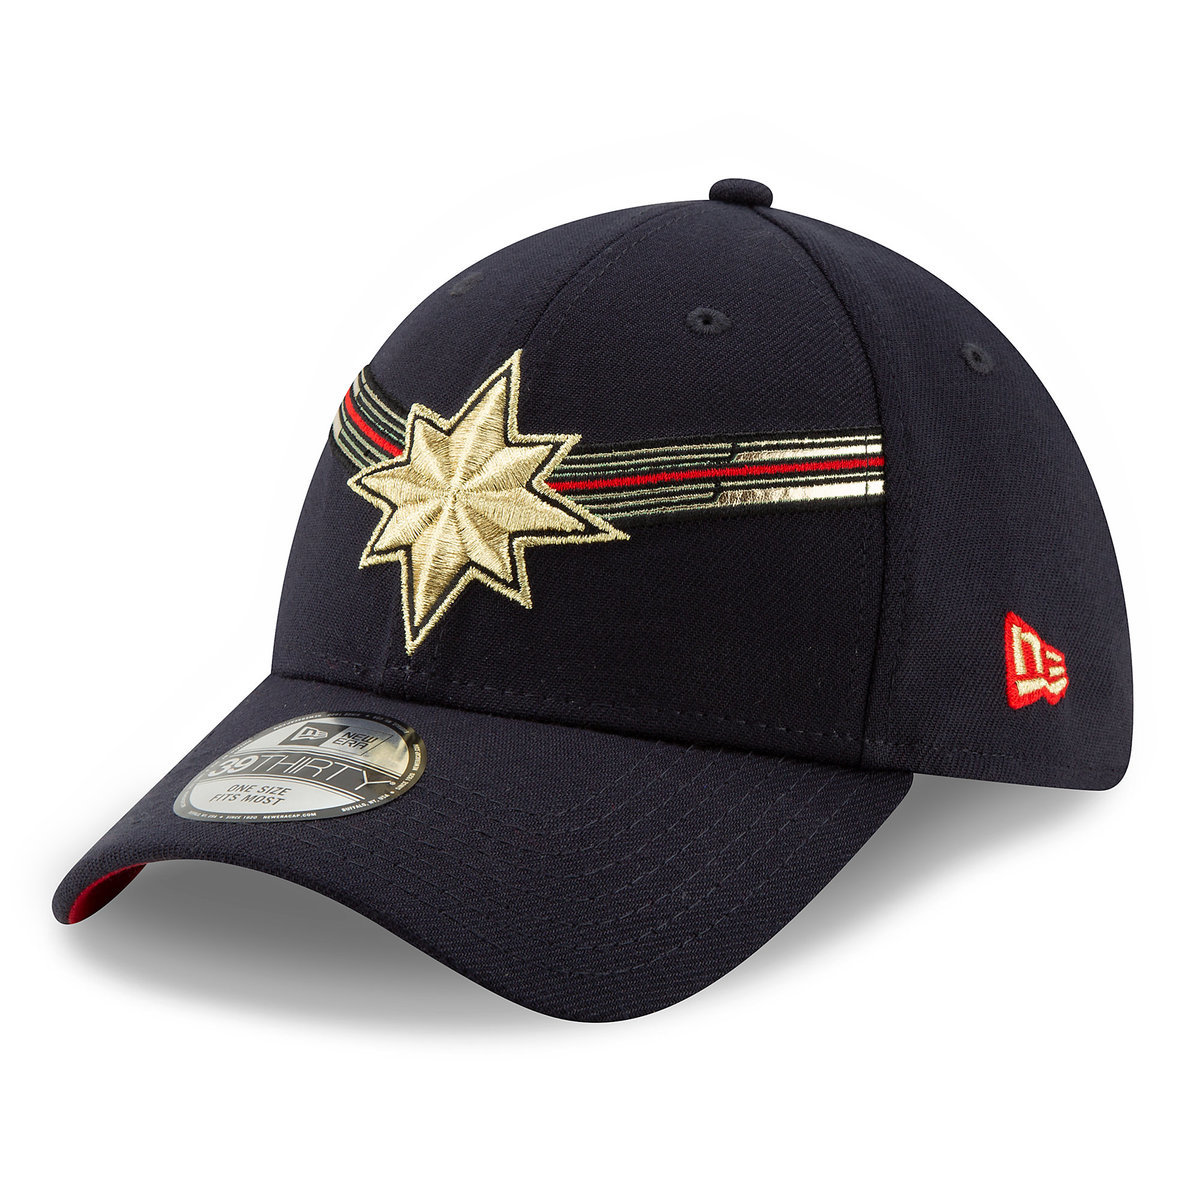 2490a4e97e9 Product Image of Marvel s Captain Marvel Baseball Cap for Adults by New Era  - Marvel Studios